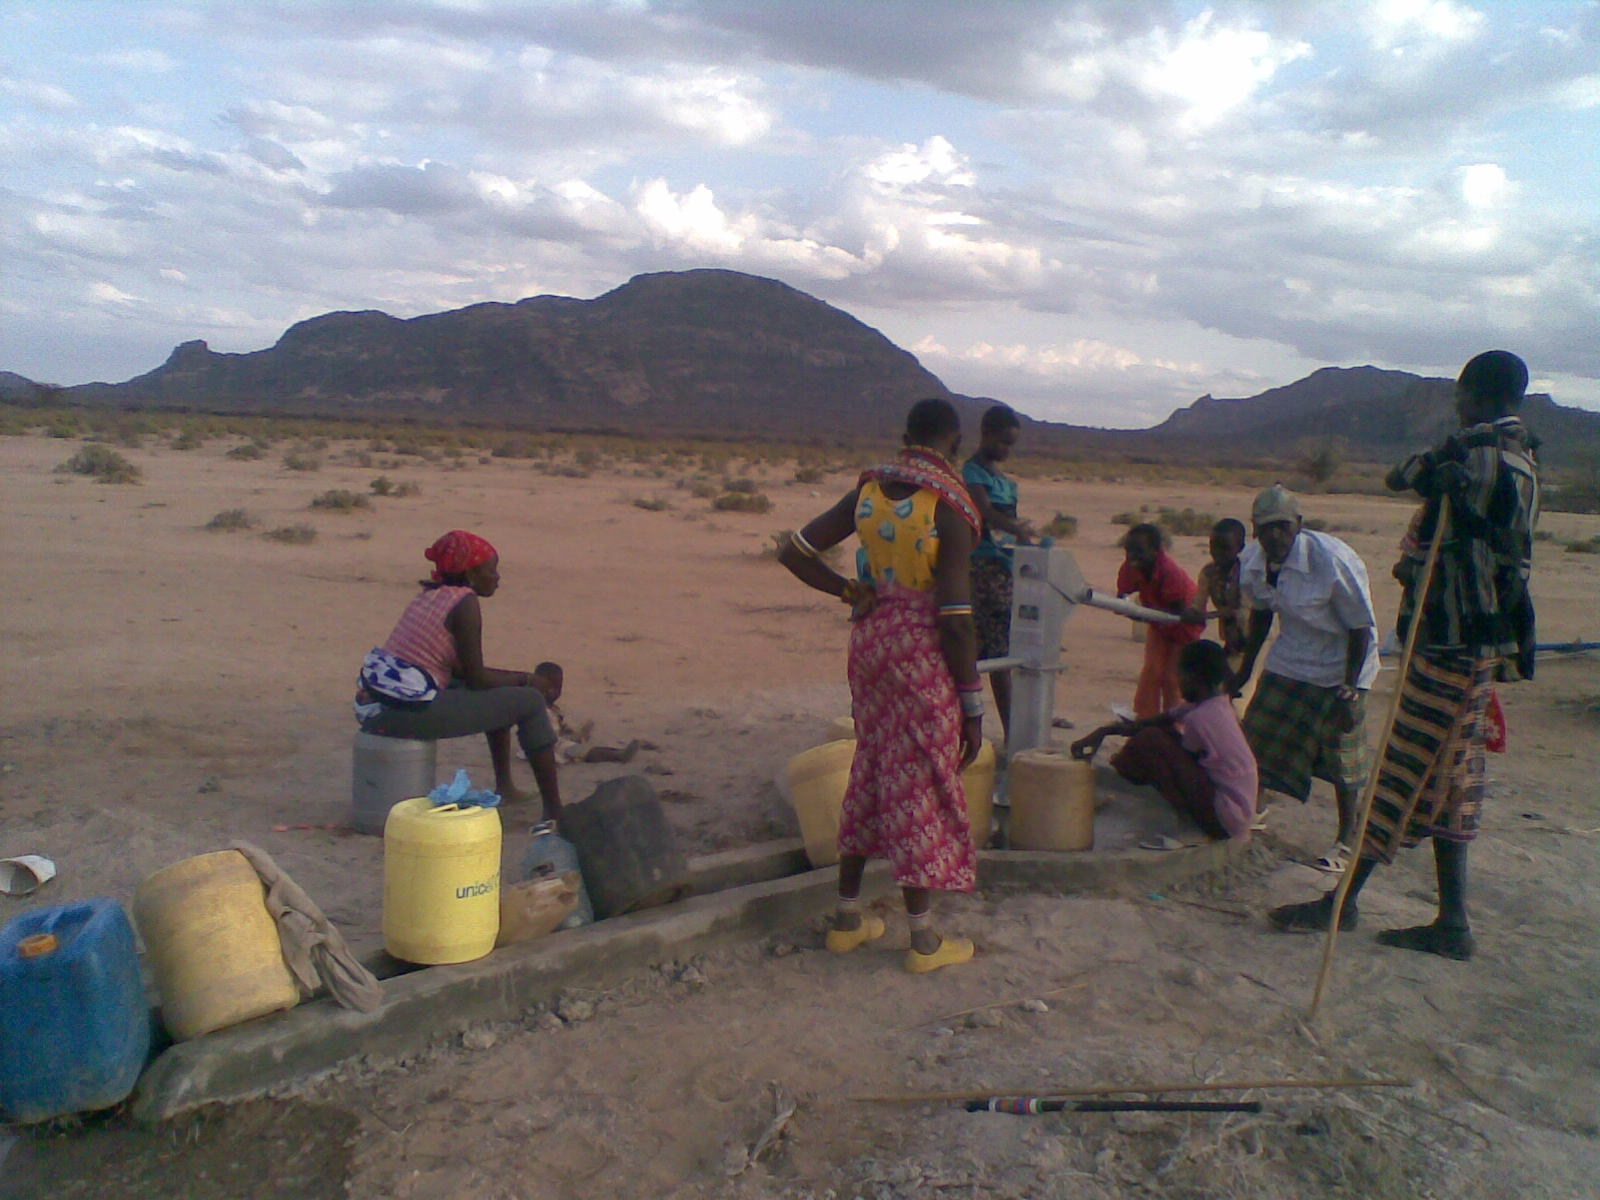 Northern Kenya thirsty for water